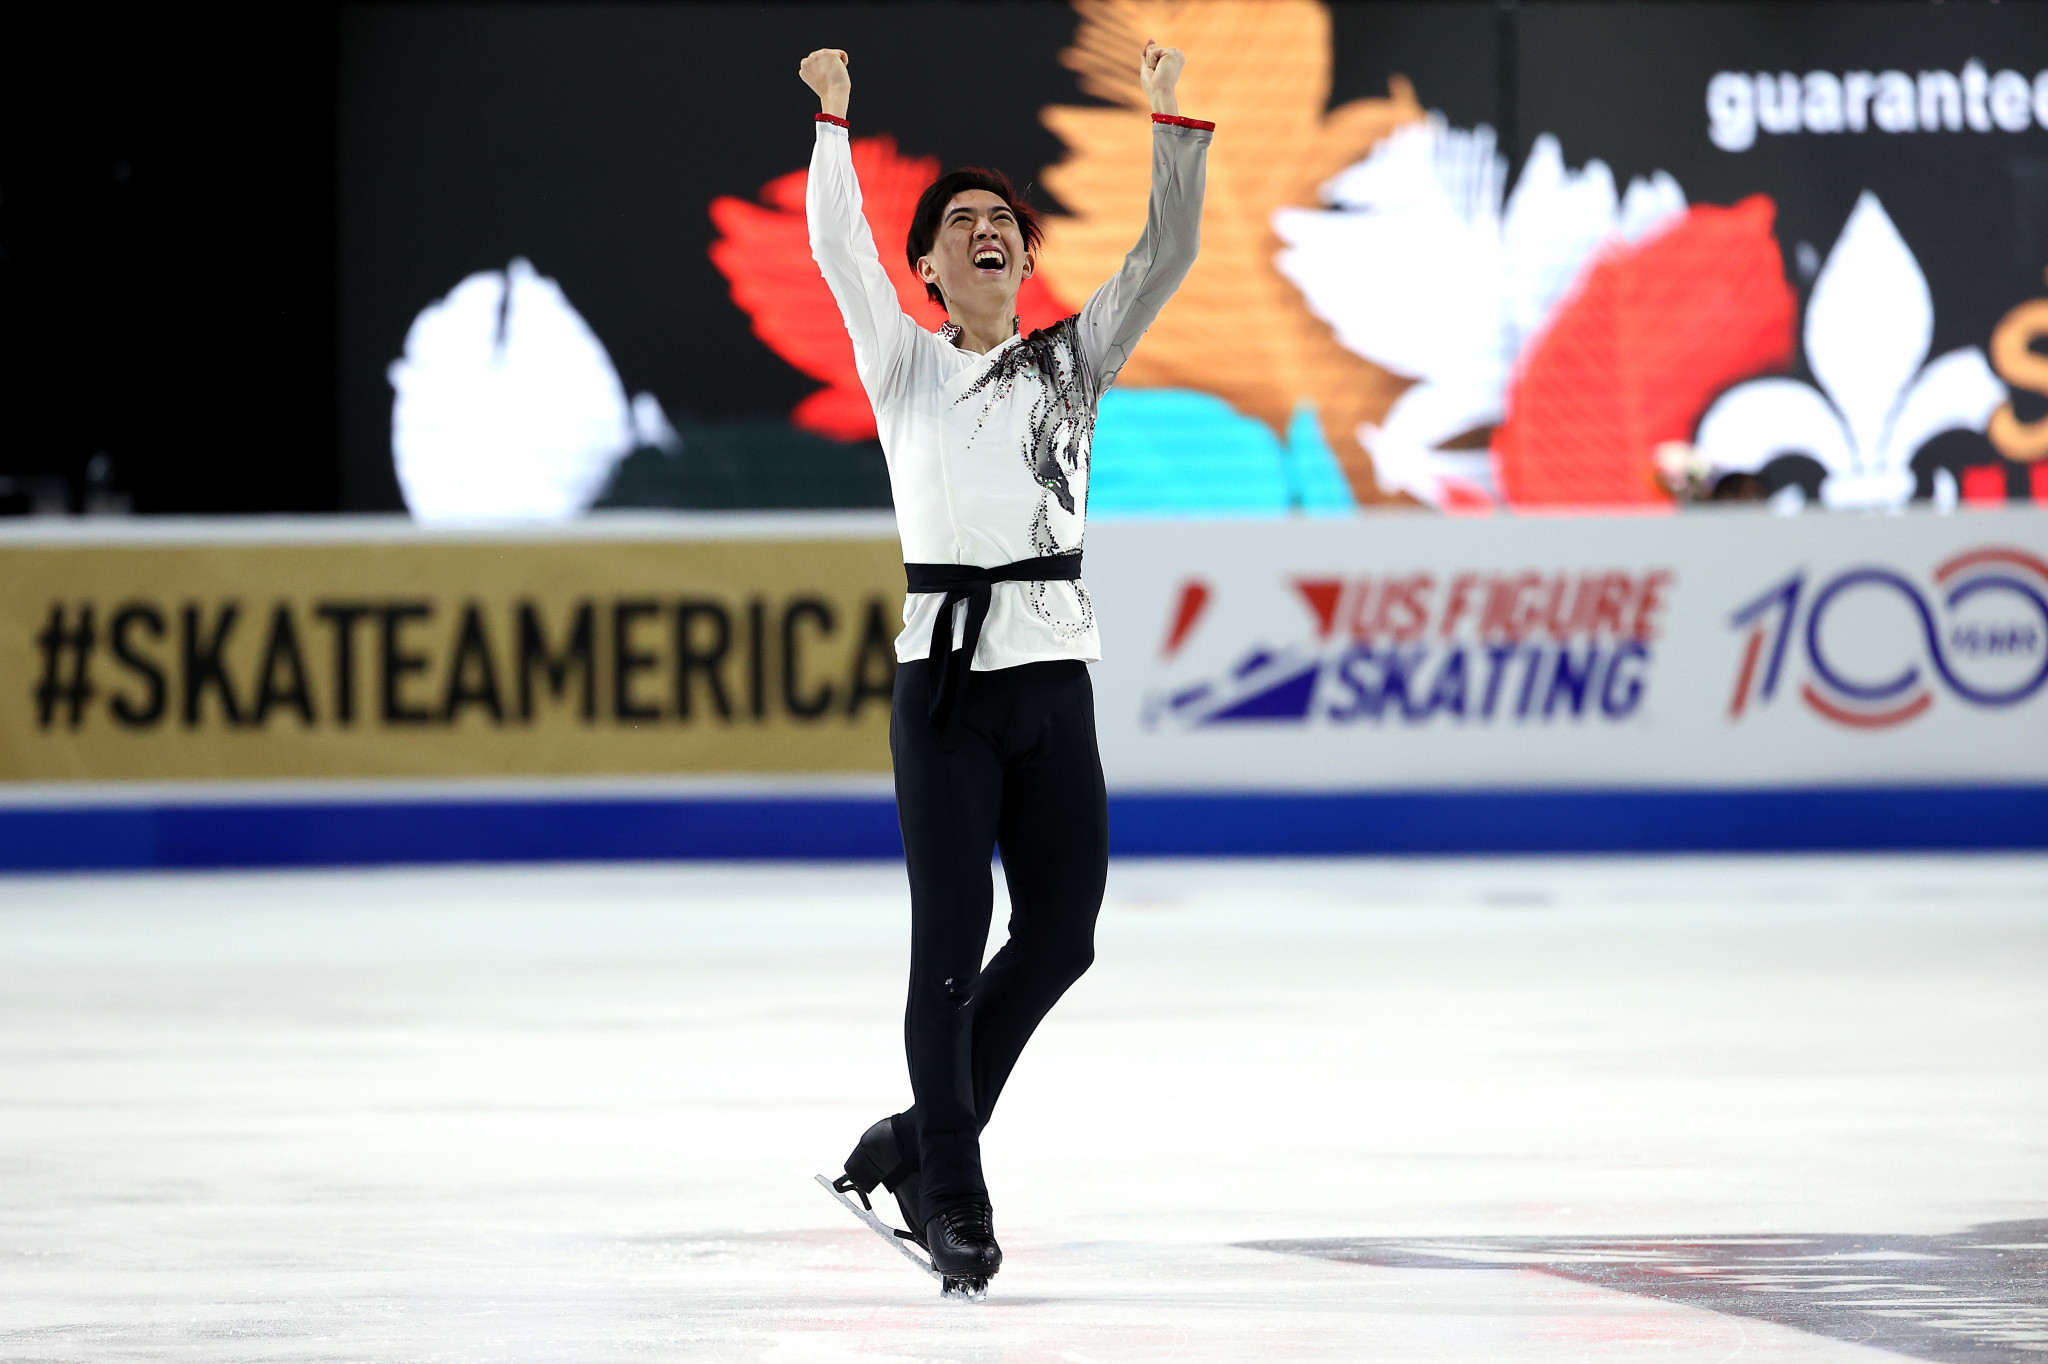 Chen's long unbeaten record ends as Zhou clinches Skate America title